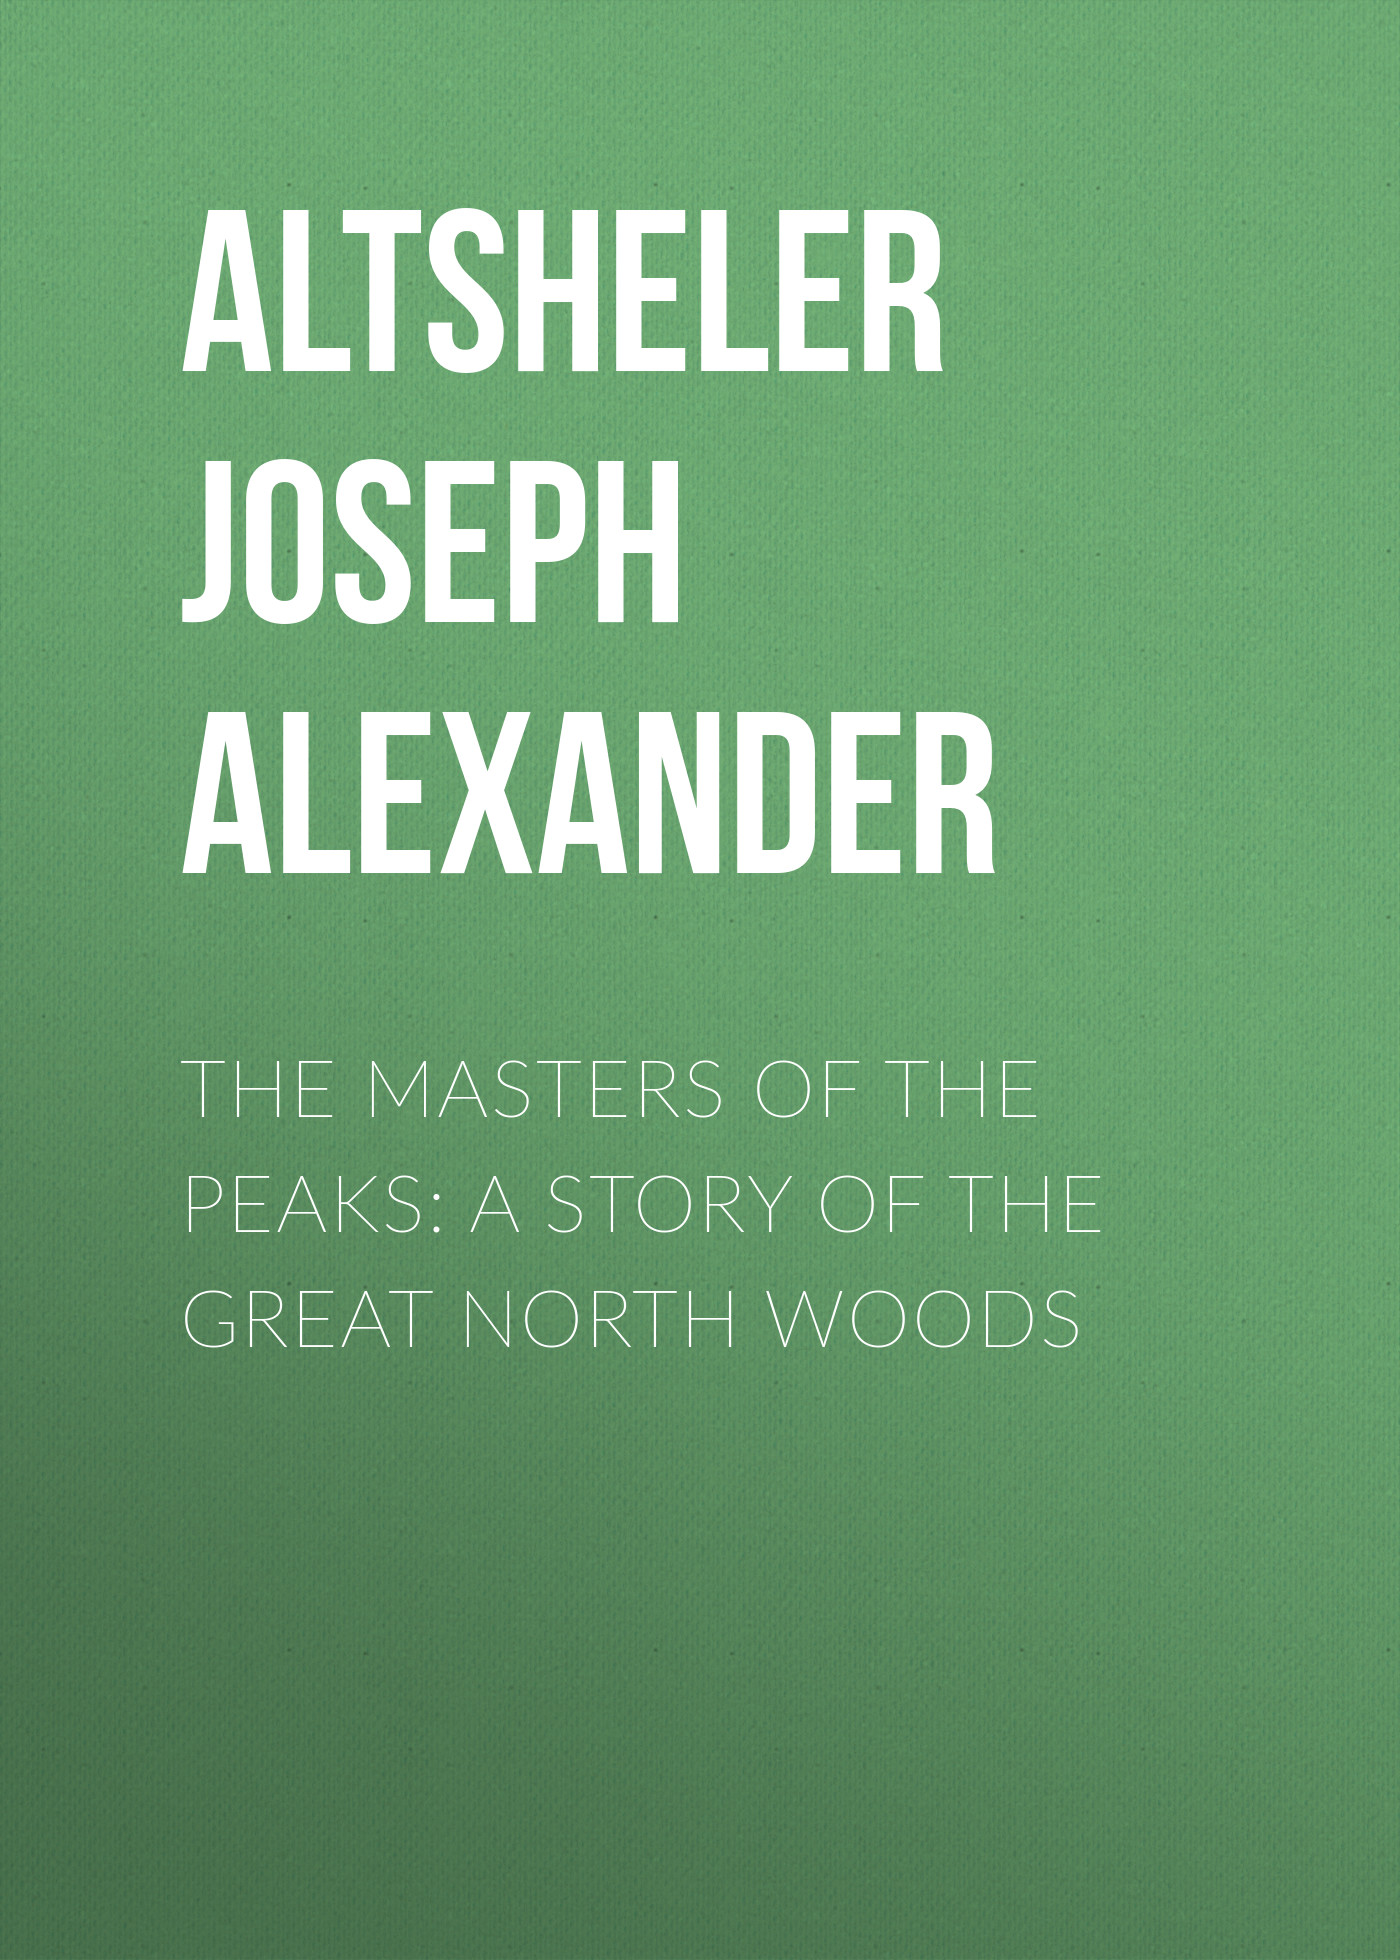 Altsheler Joseph Alexander The Masters of the Peaks: A Story of the Great North Woods north carolina constitutional convention journal of the convention of the state of north carolina 1 2